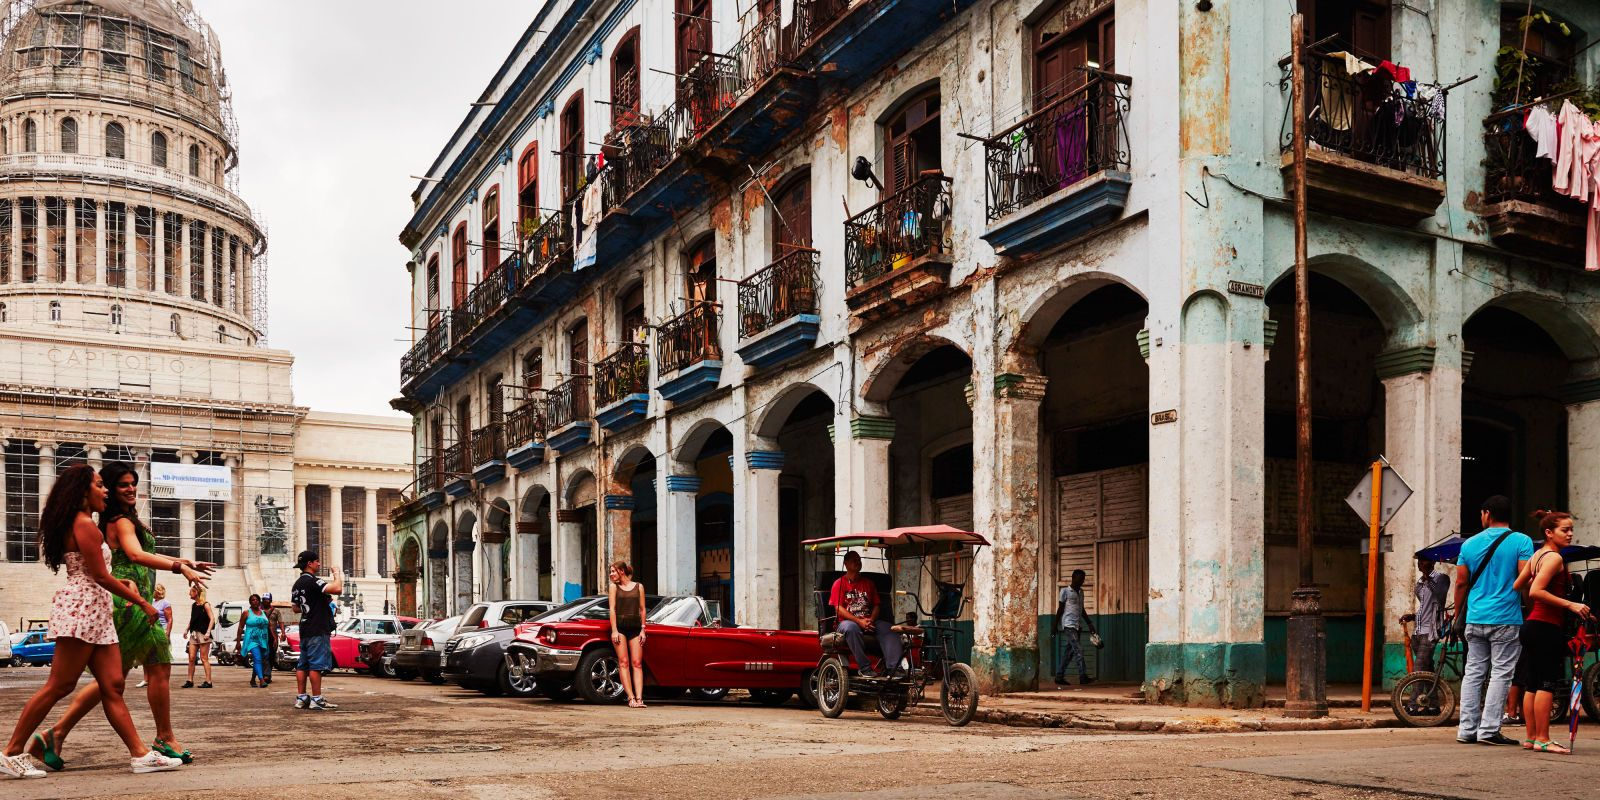 30 Pictures That Will Make You Want to Visit Cuba Immediately #visitcuba